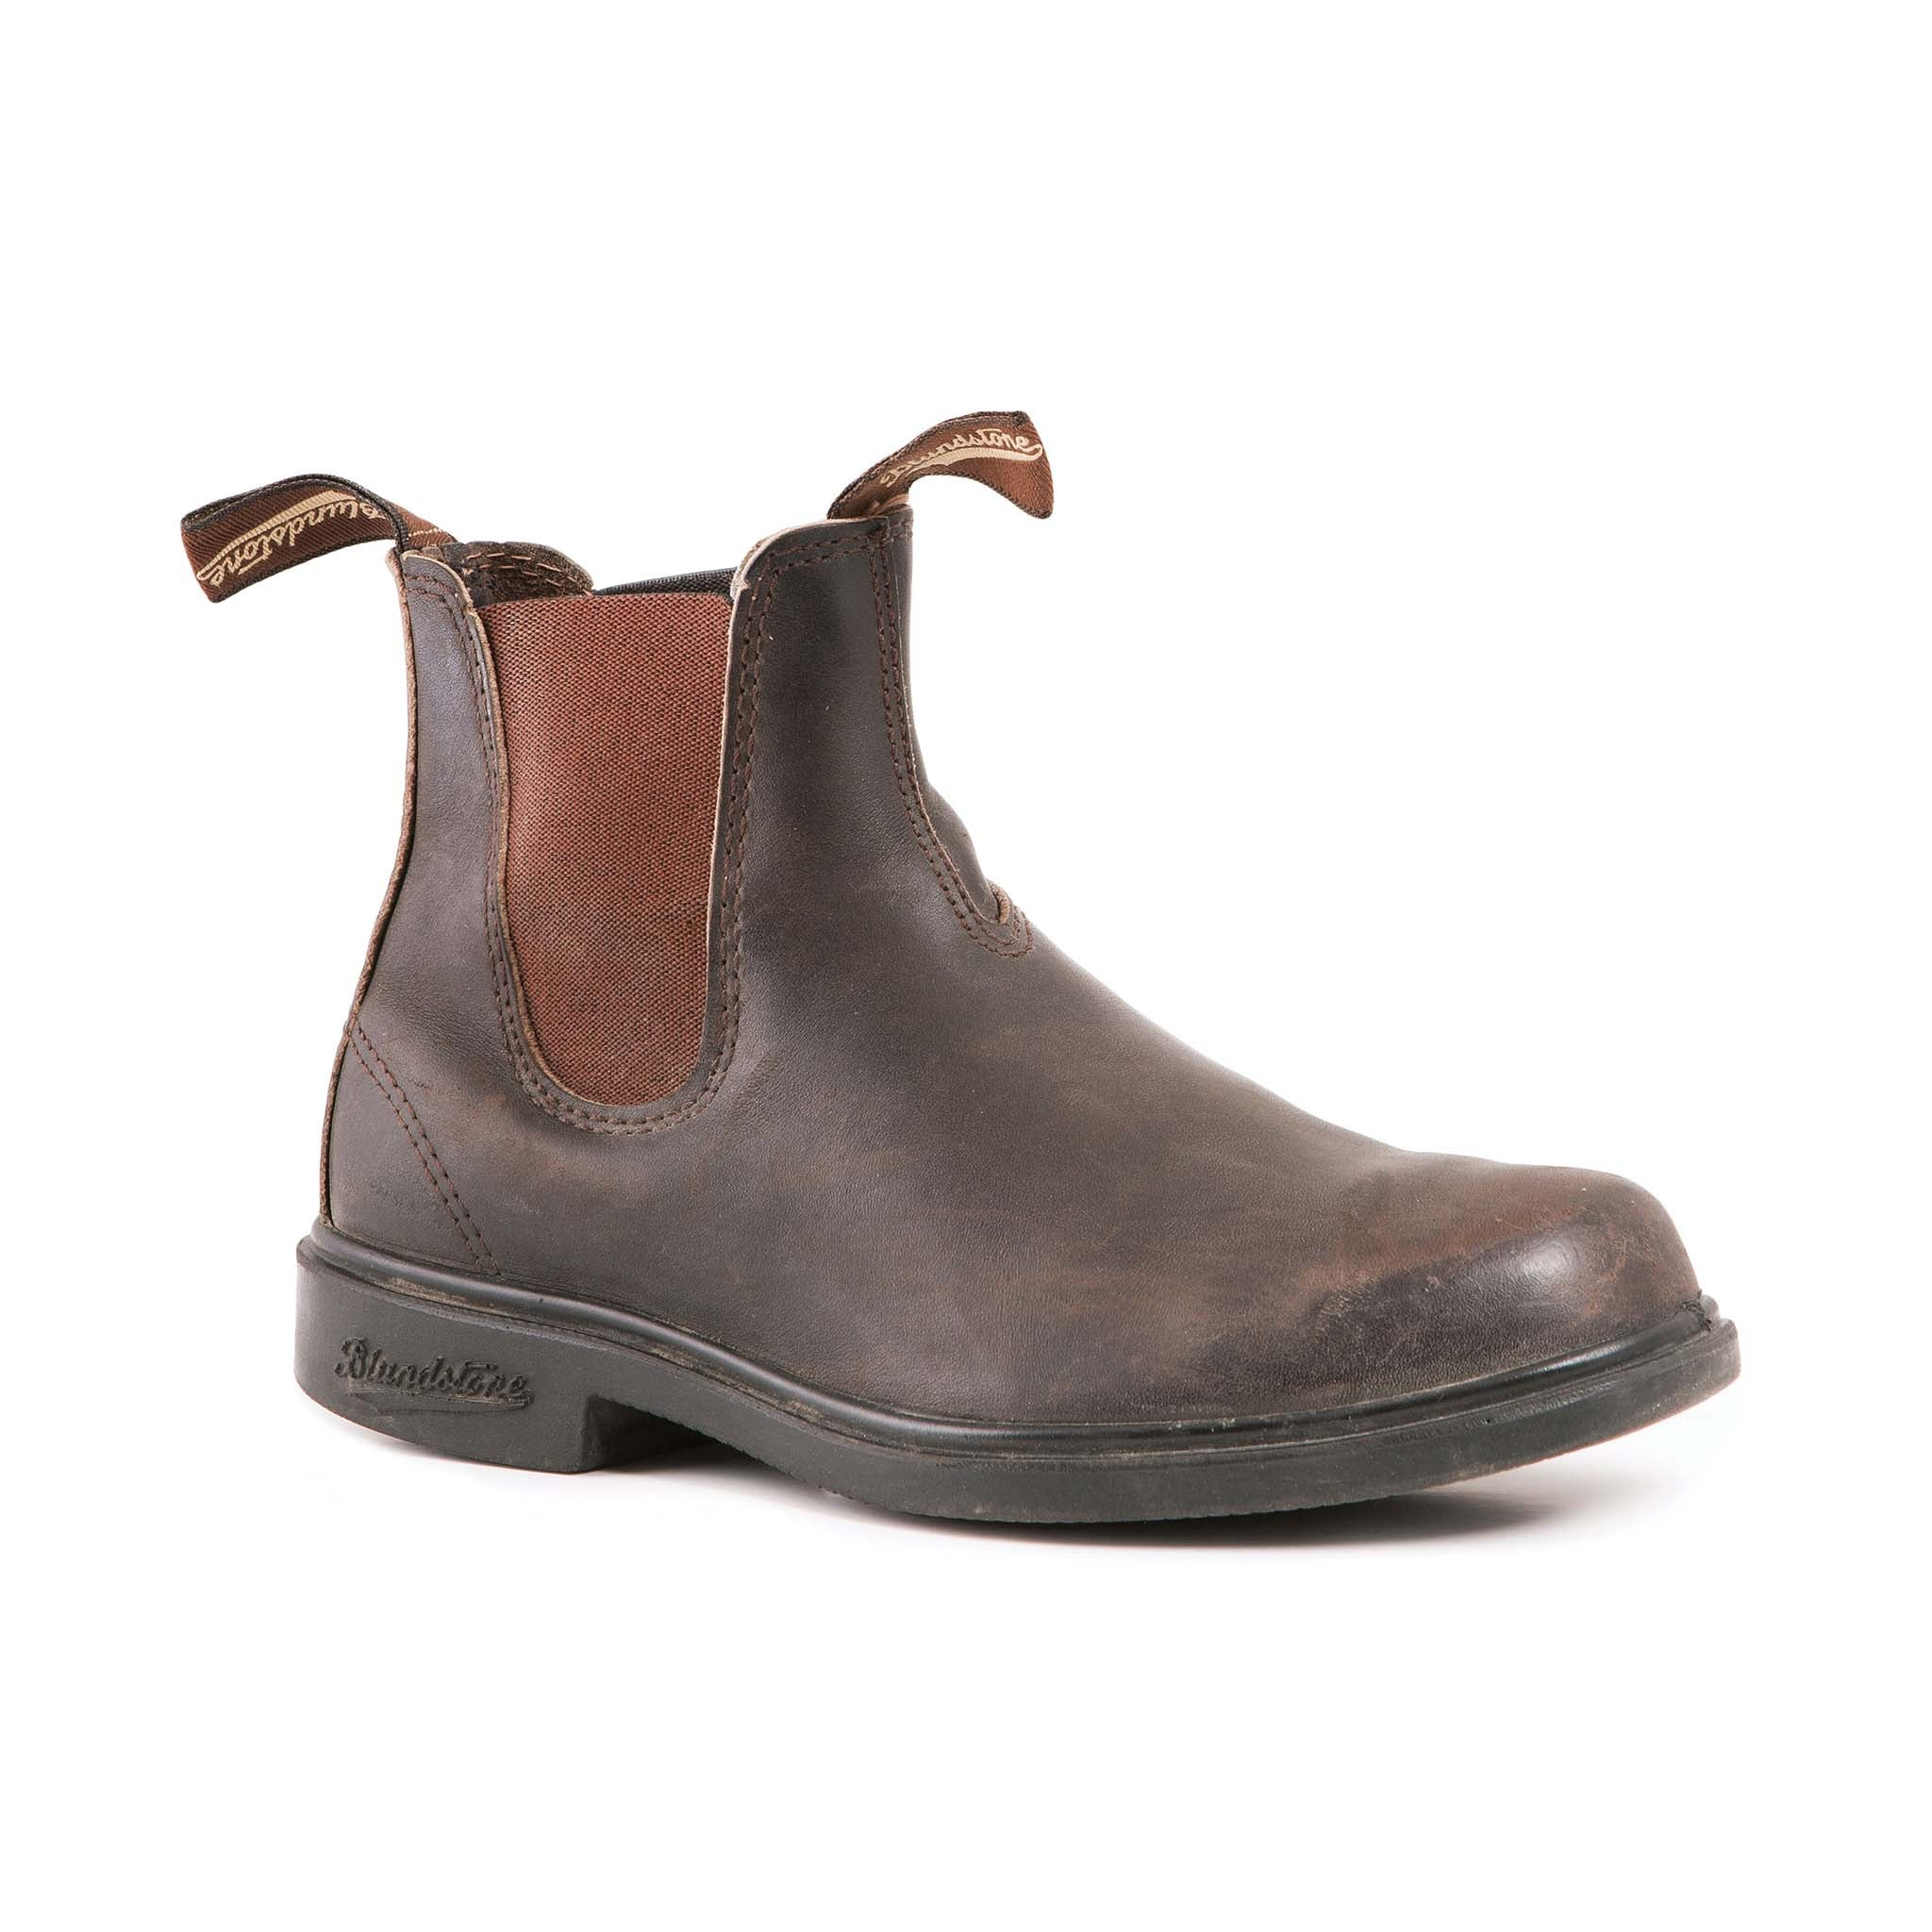 35b0dd5bfc1 067 Blundstone Chisel Toe Dress Stout Brown